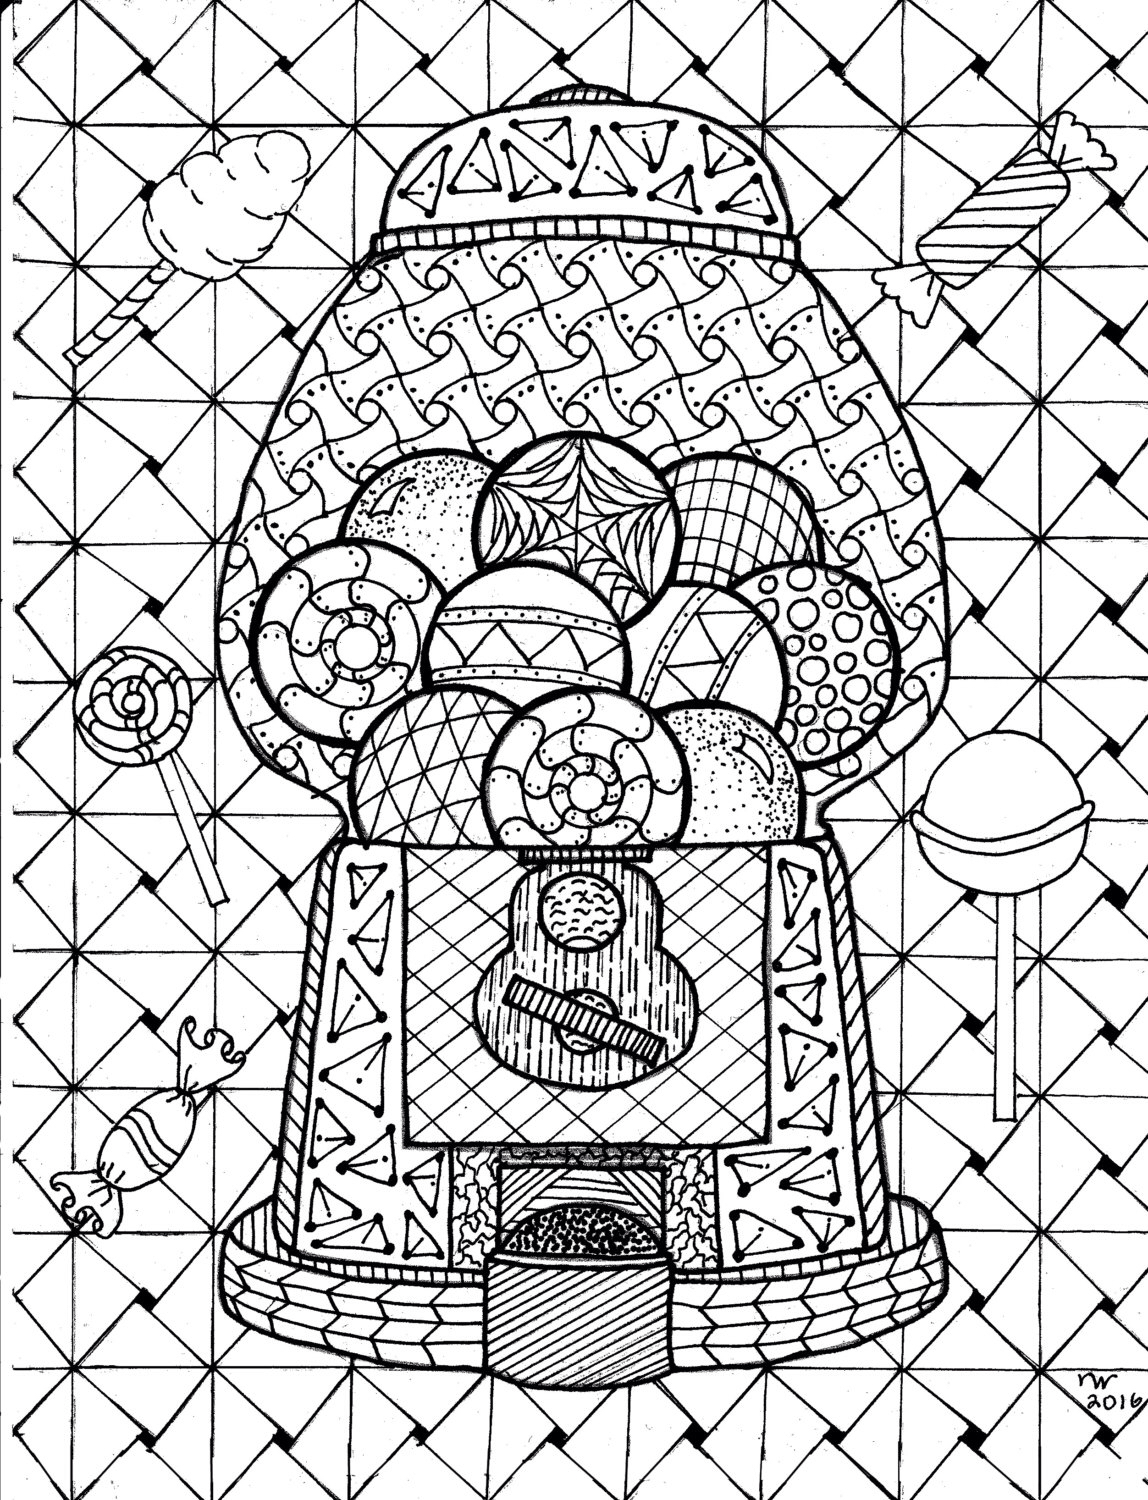 Bubble Gum Machine Drawing At Getdrawings